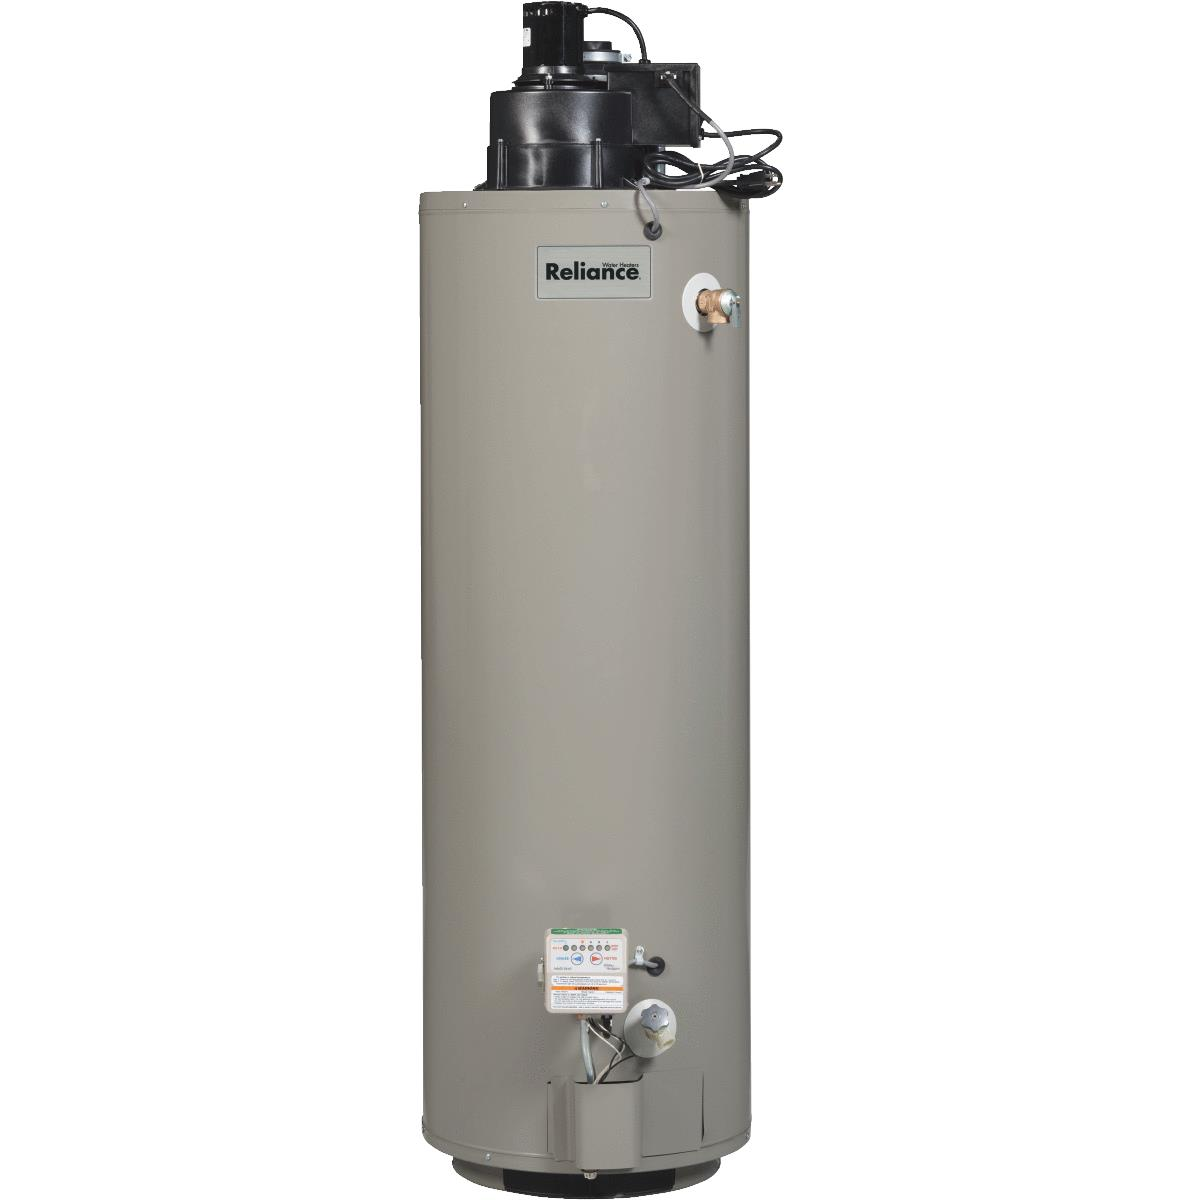 Reliance 40gal Natural Gas Water Heater with Power-Vent